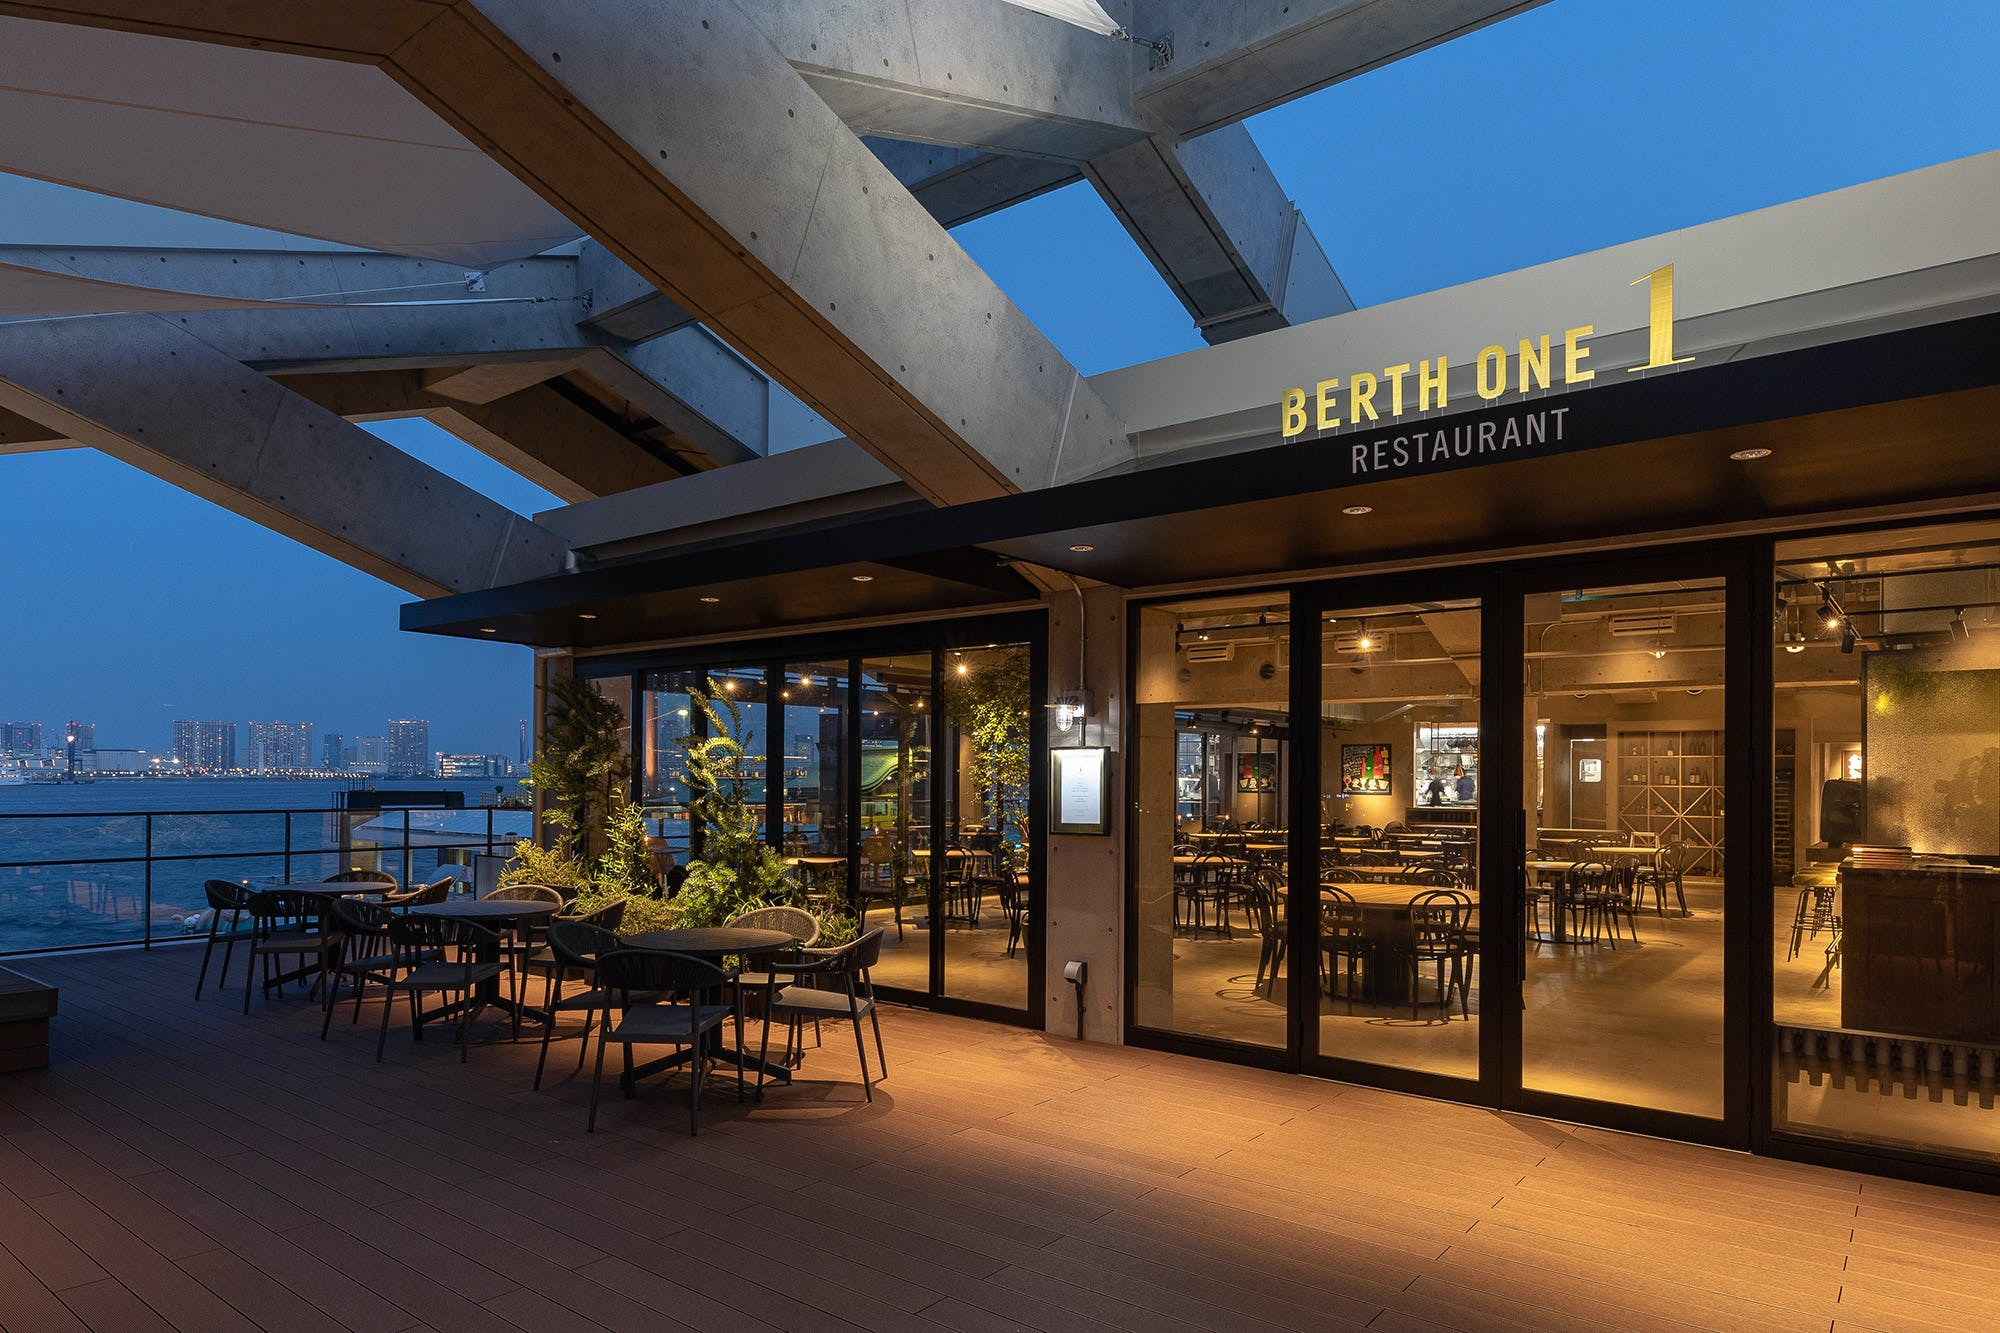 BERTH ONE RESTAURANT